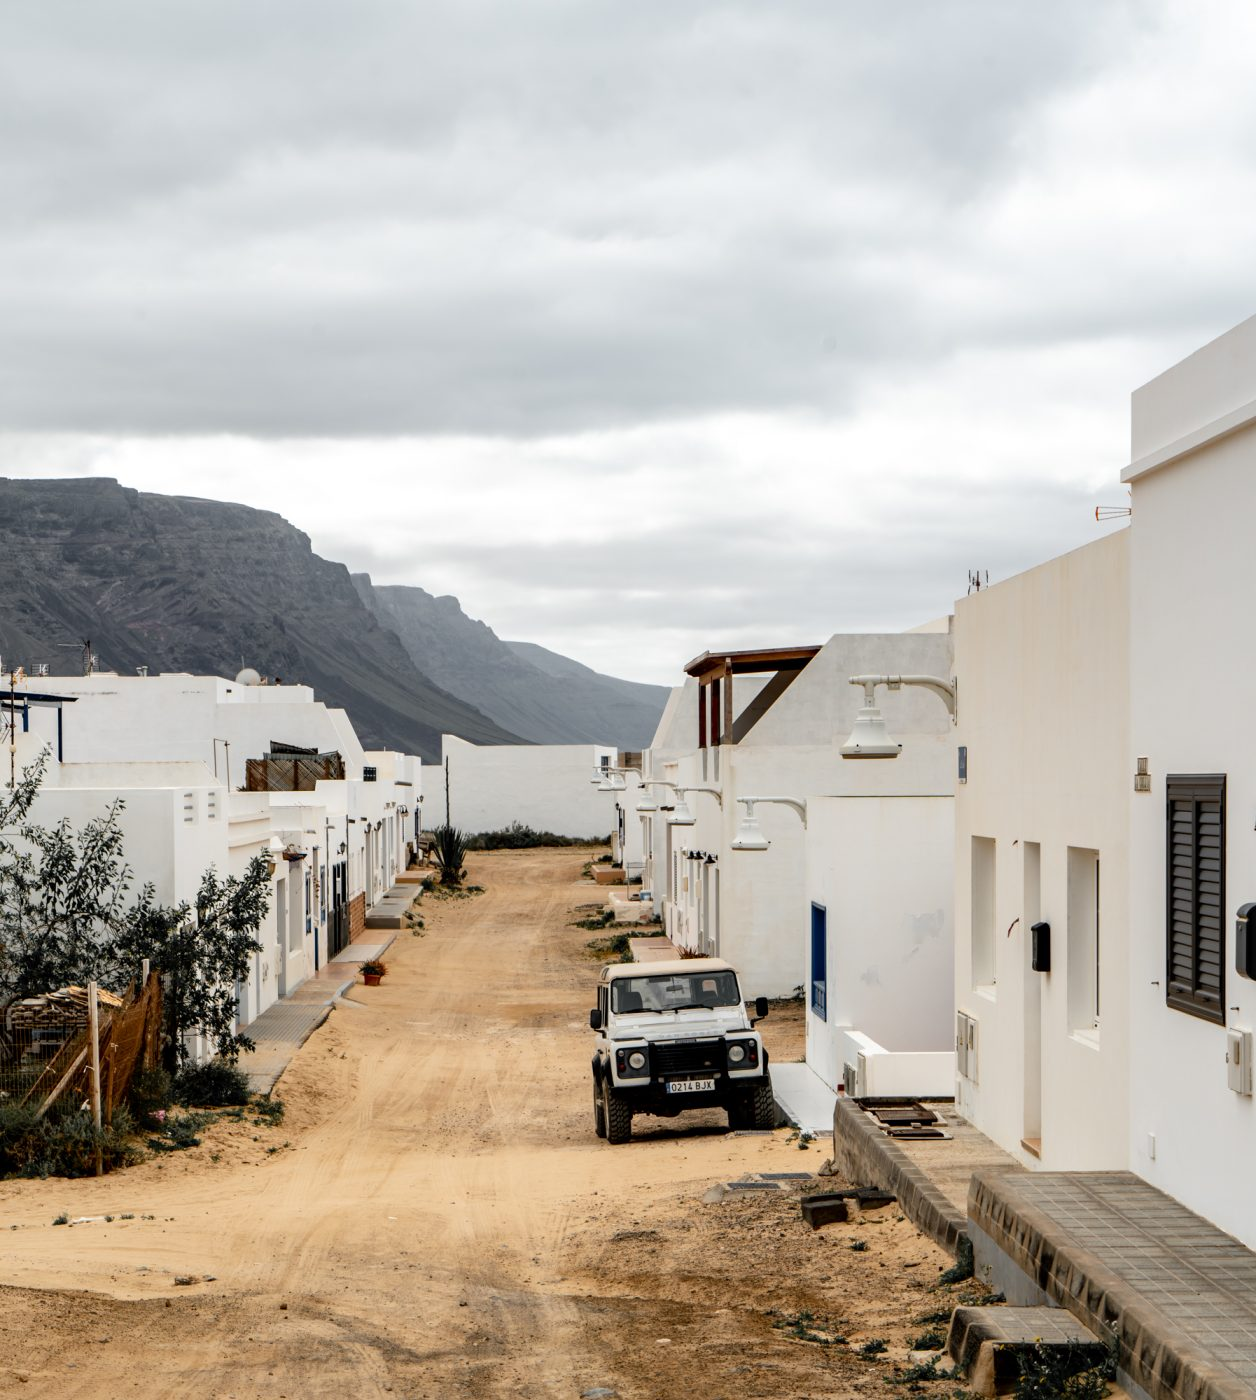 Take the ferry to visit Caleta del Sebo, La Graciosa